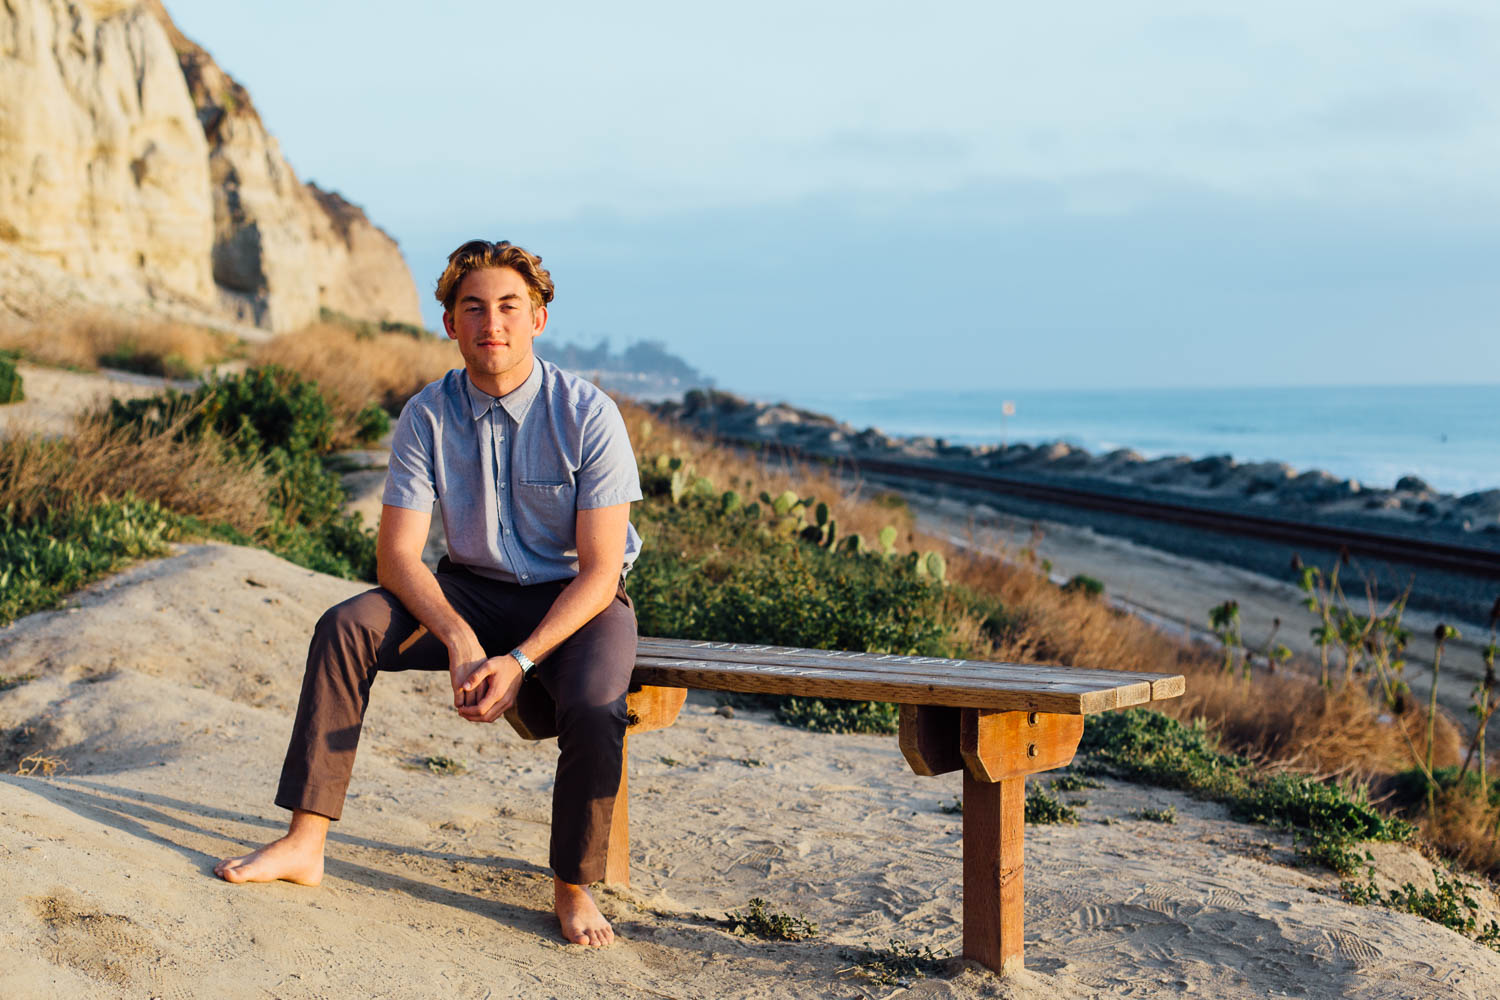 san_clemente_senior_portrait_photographer (3 of 7).jpg